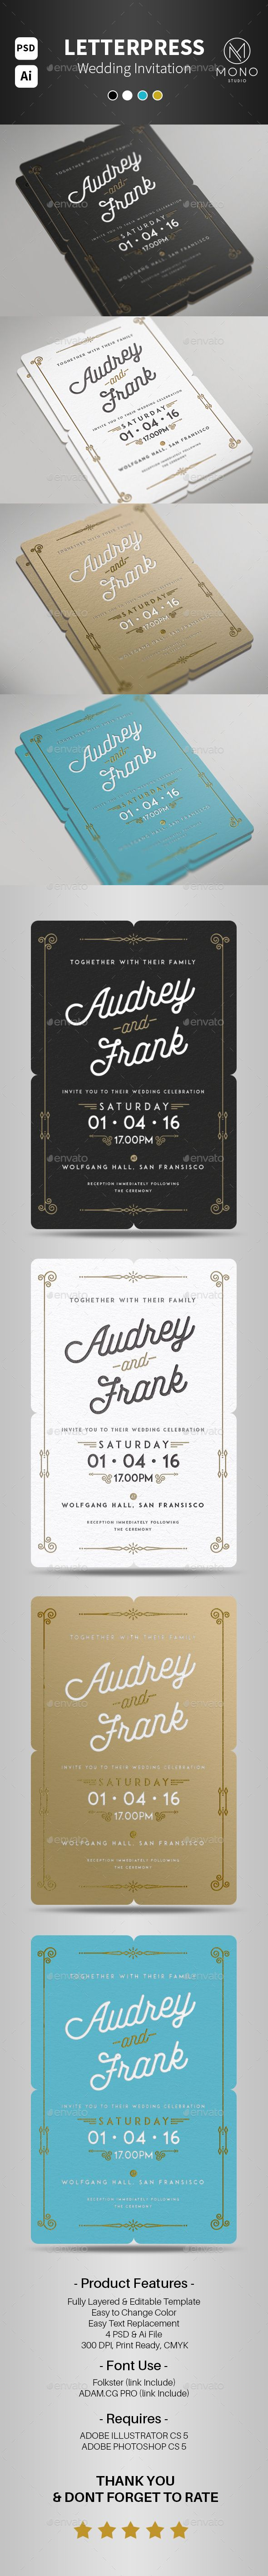 business meeting invitation email template%0A Letterpress Wedding Invitation